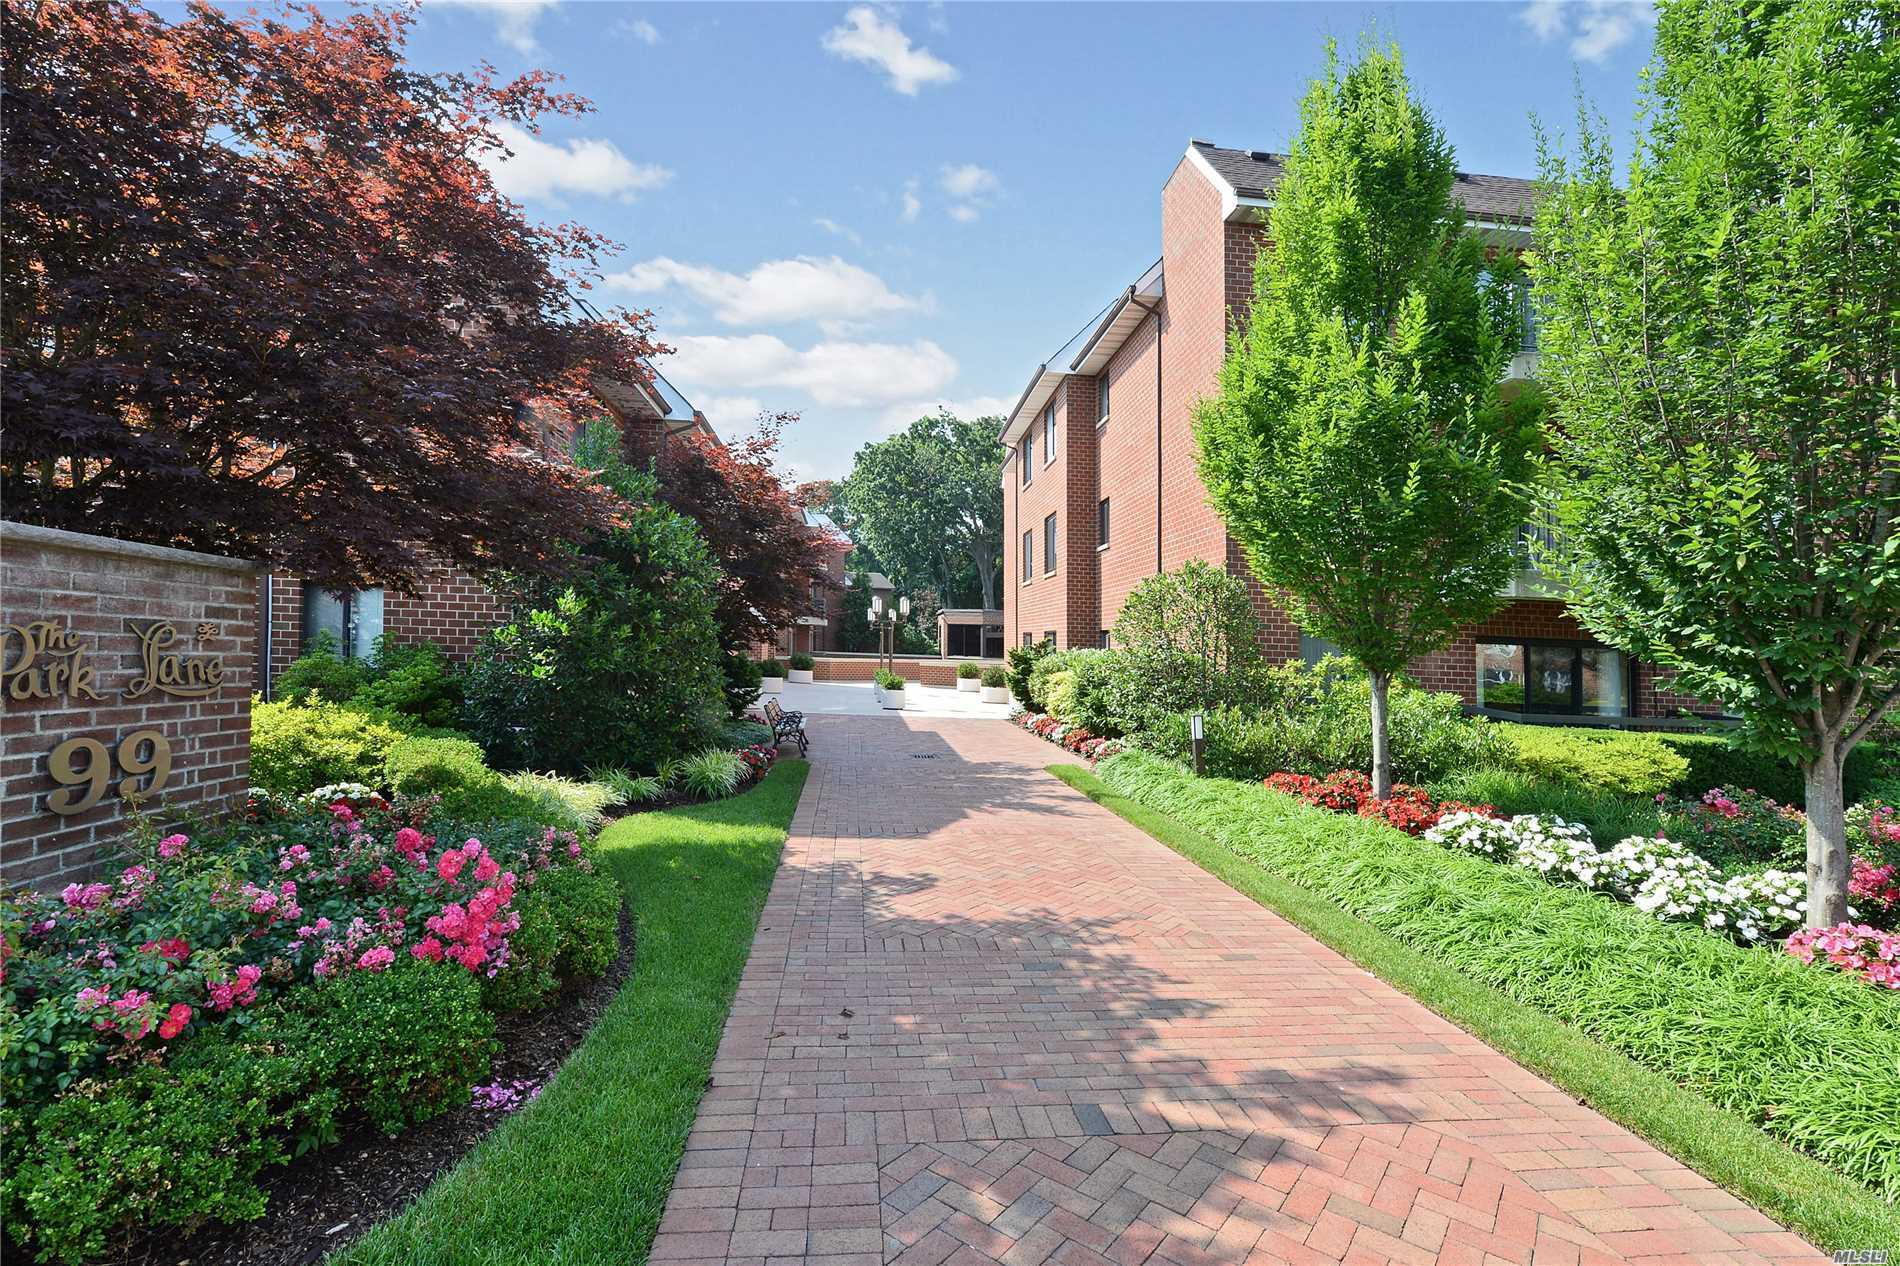 Property for sale at 99 S Park Ave, Rockville Centre,  NY 11570